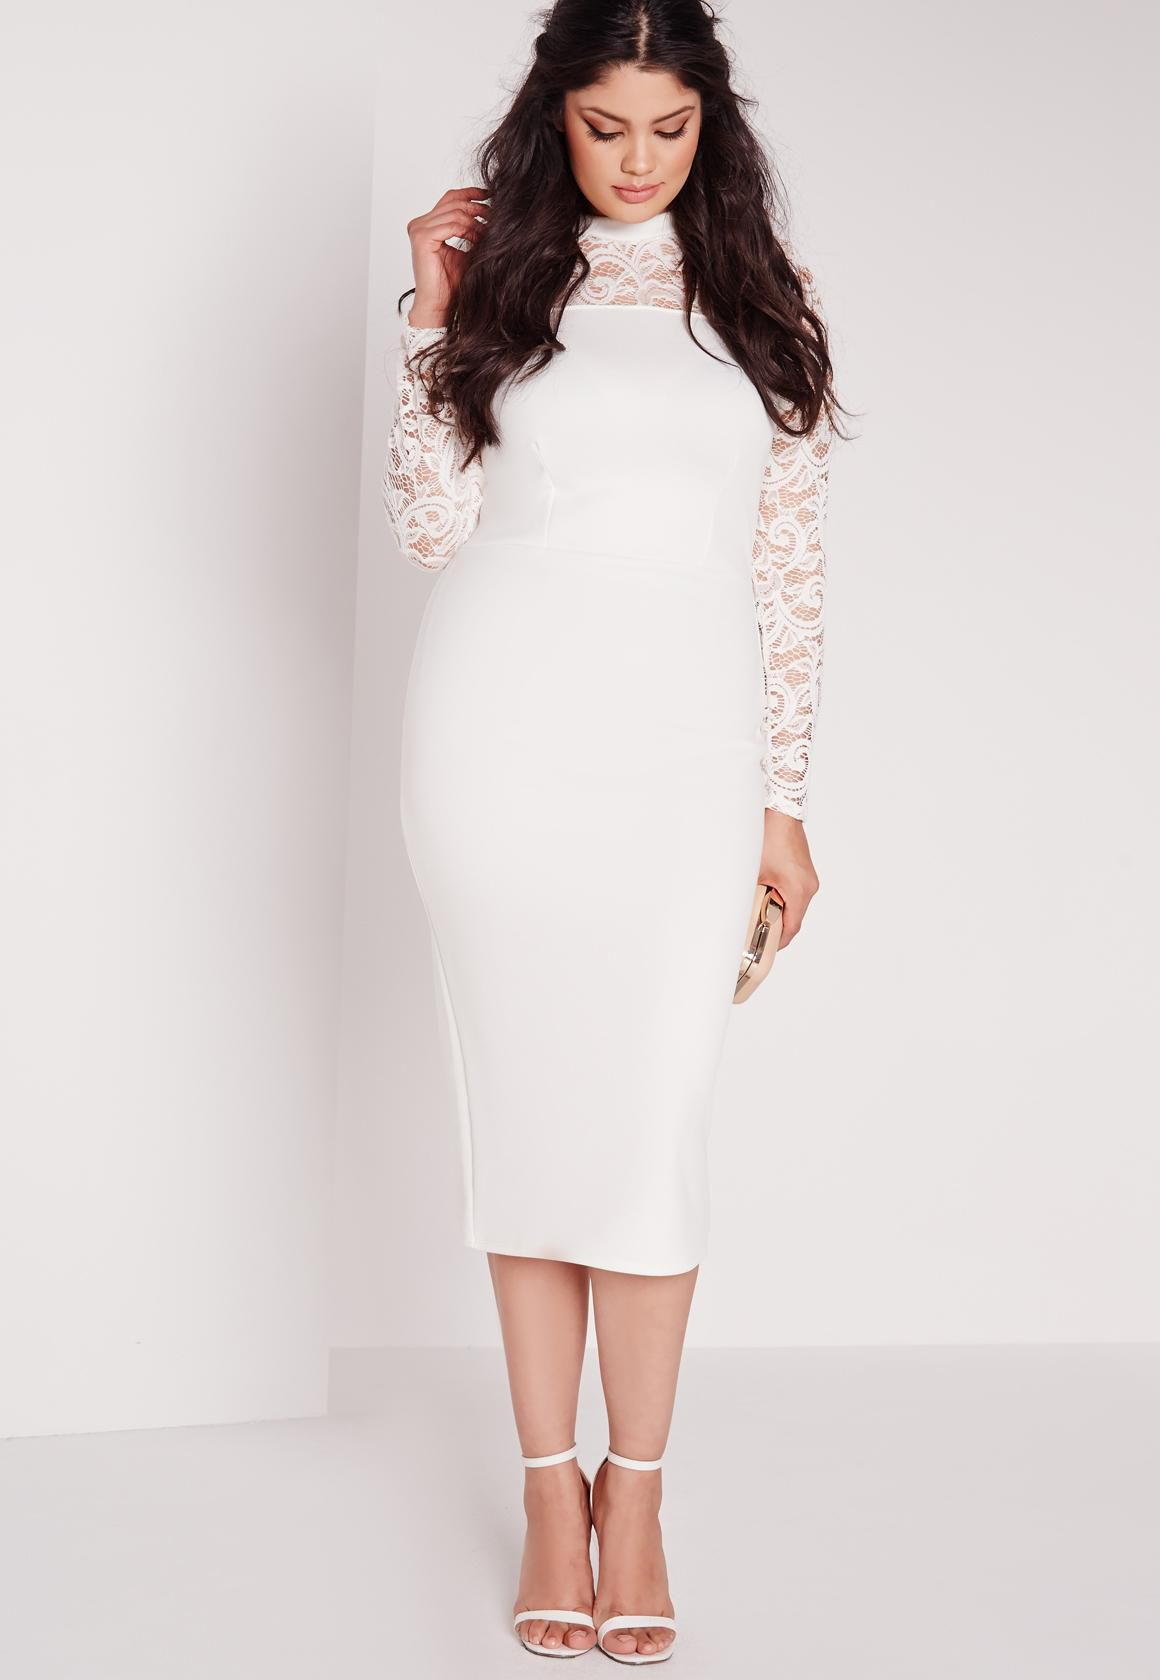 Lace midi dress plus size dresses ask for Plus size midi dresses for weddings